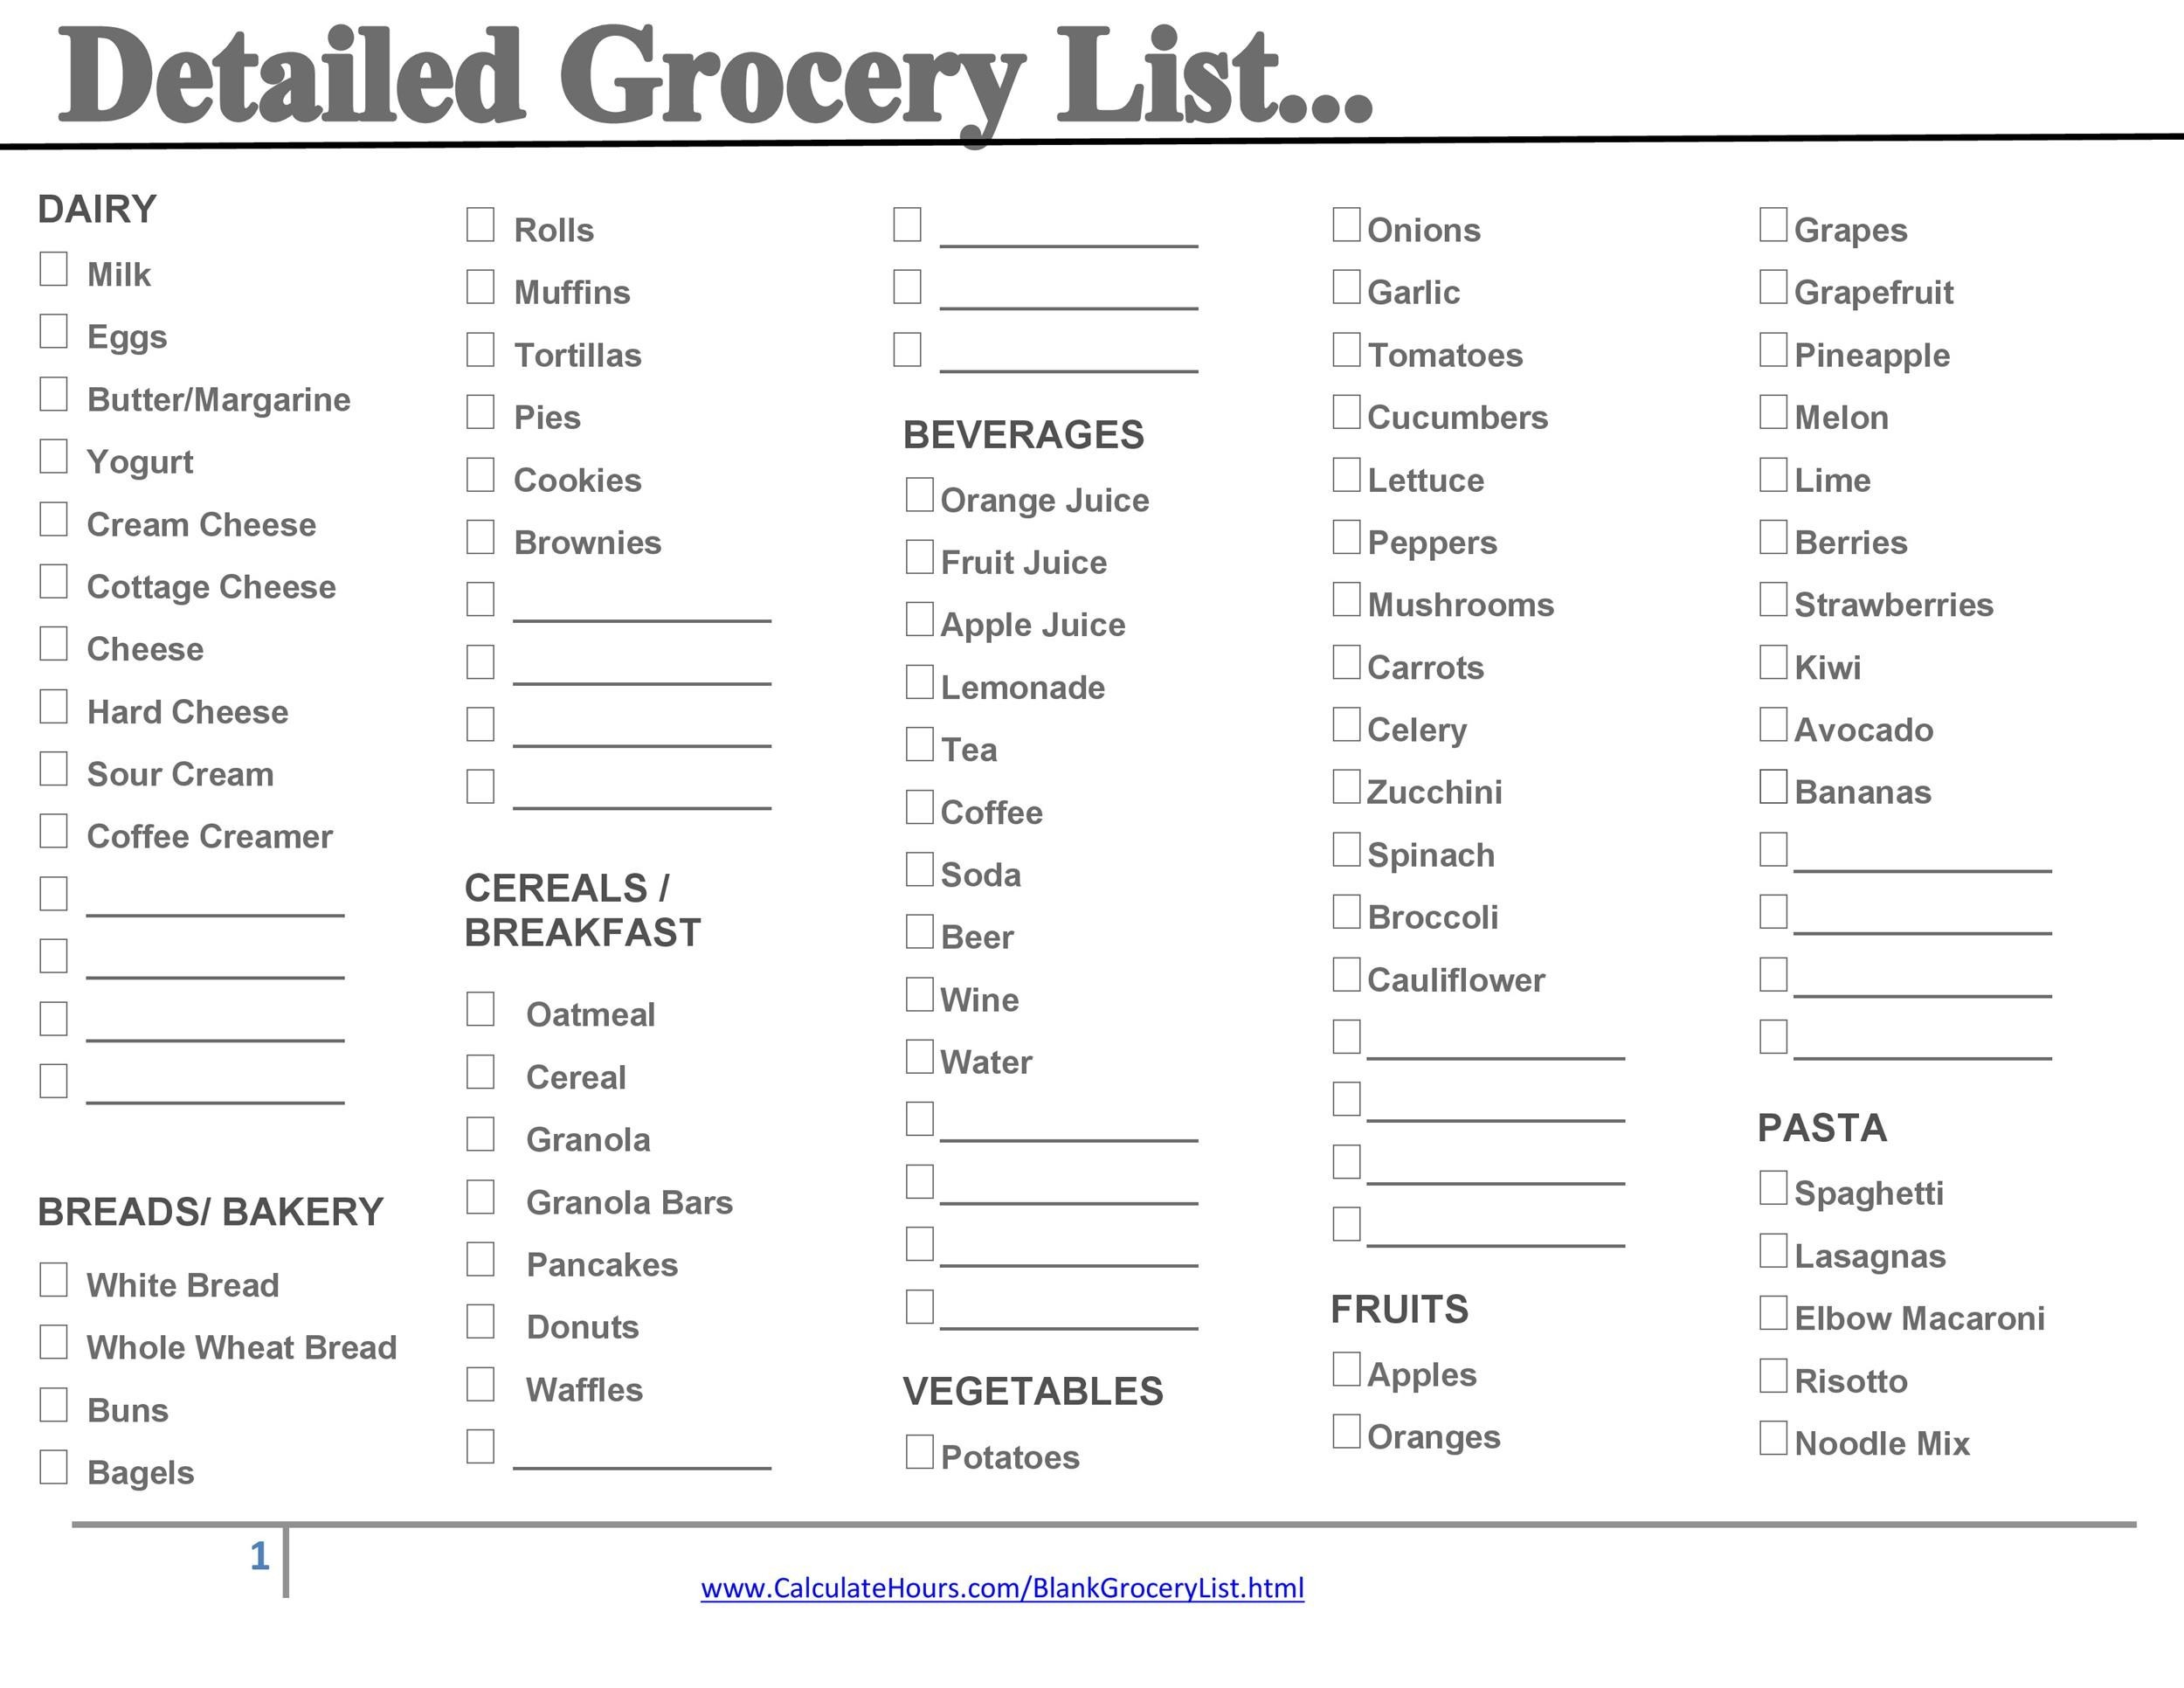 40+ Printable Grocery List Templates (Shopping List) ᐅ Template Lab